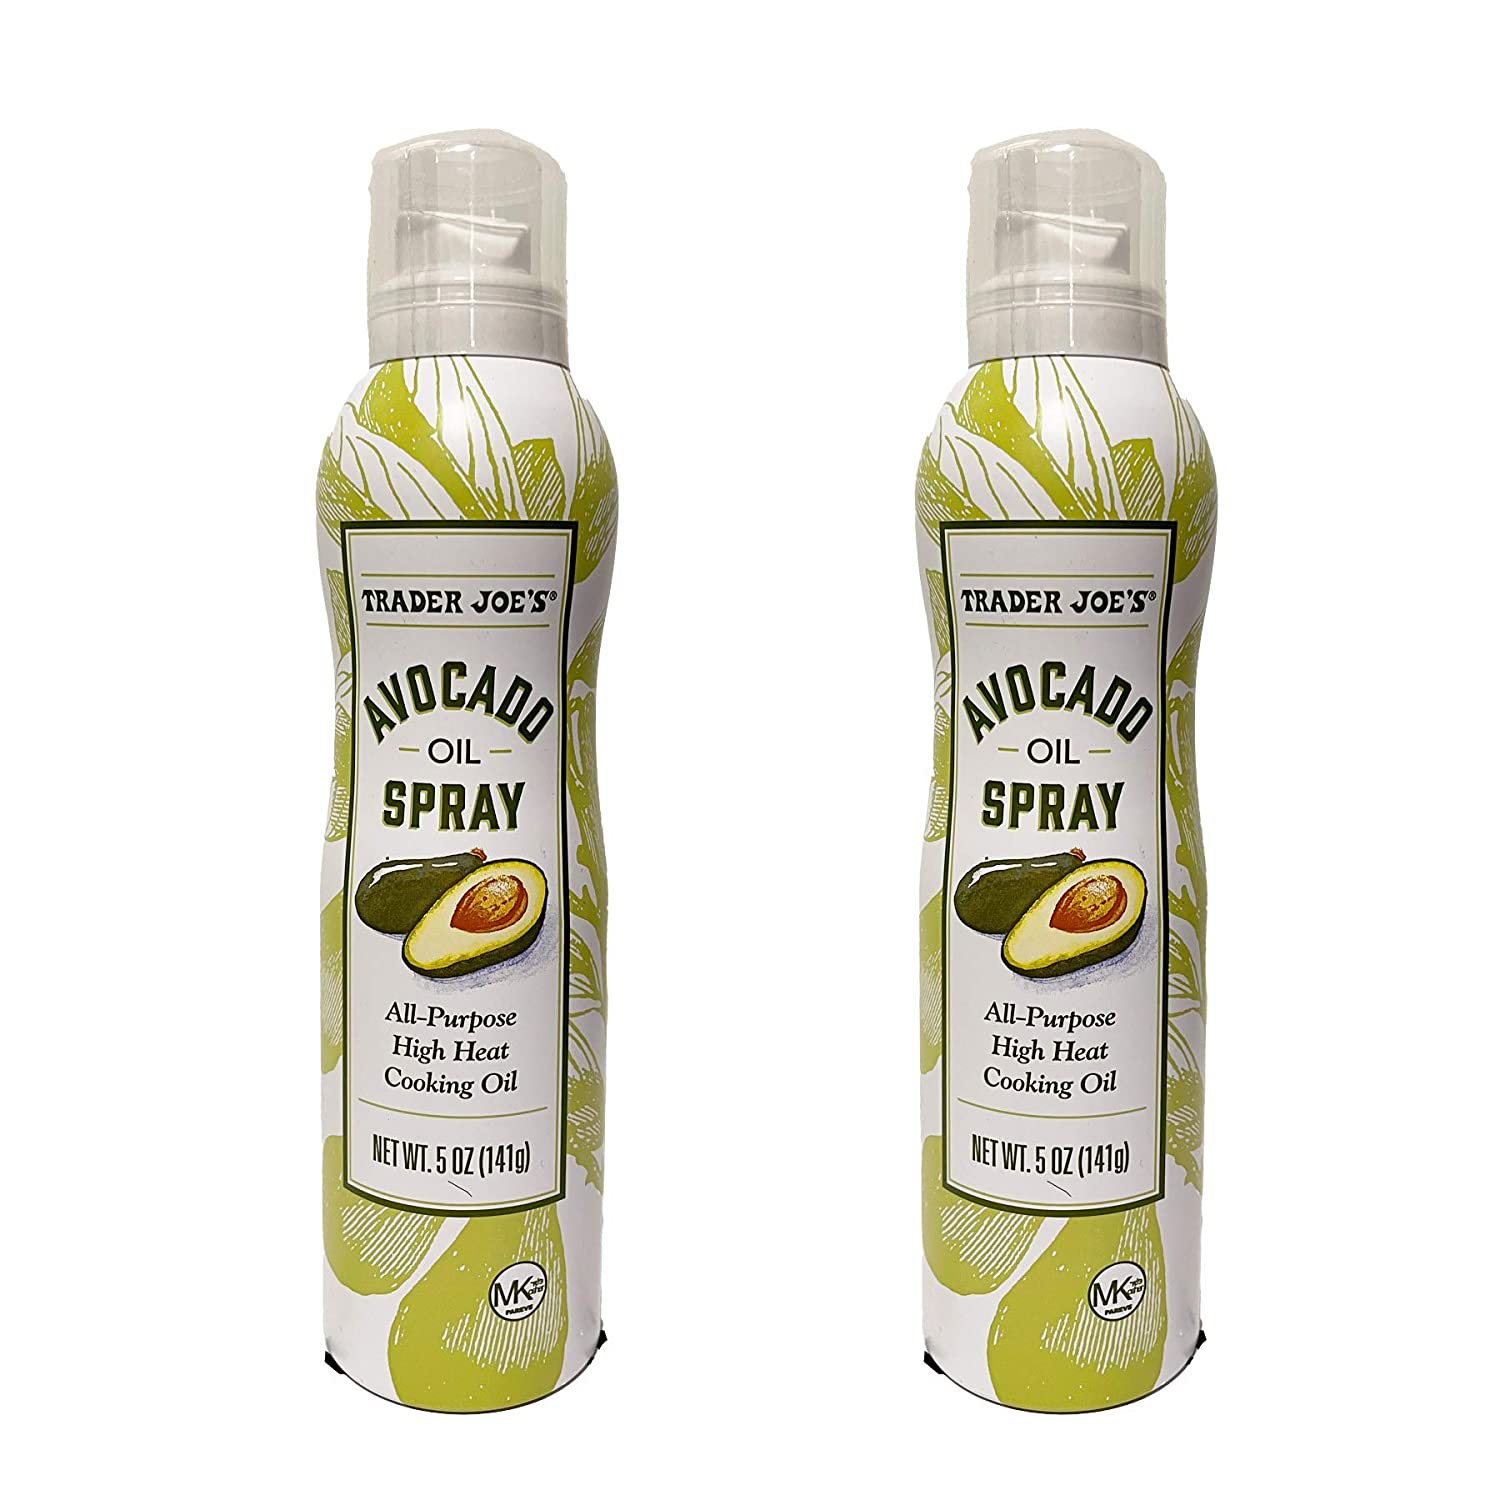 Trader Joe's Avocado Oil Spray All Purpose High Heat Cooking Oil - Pack of 2